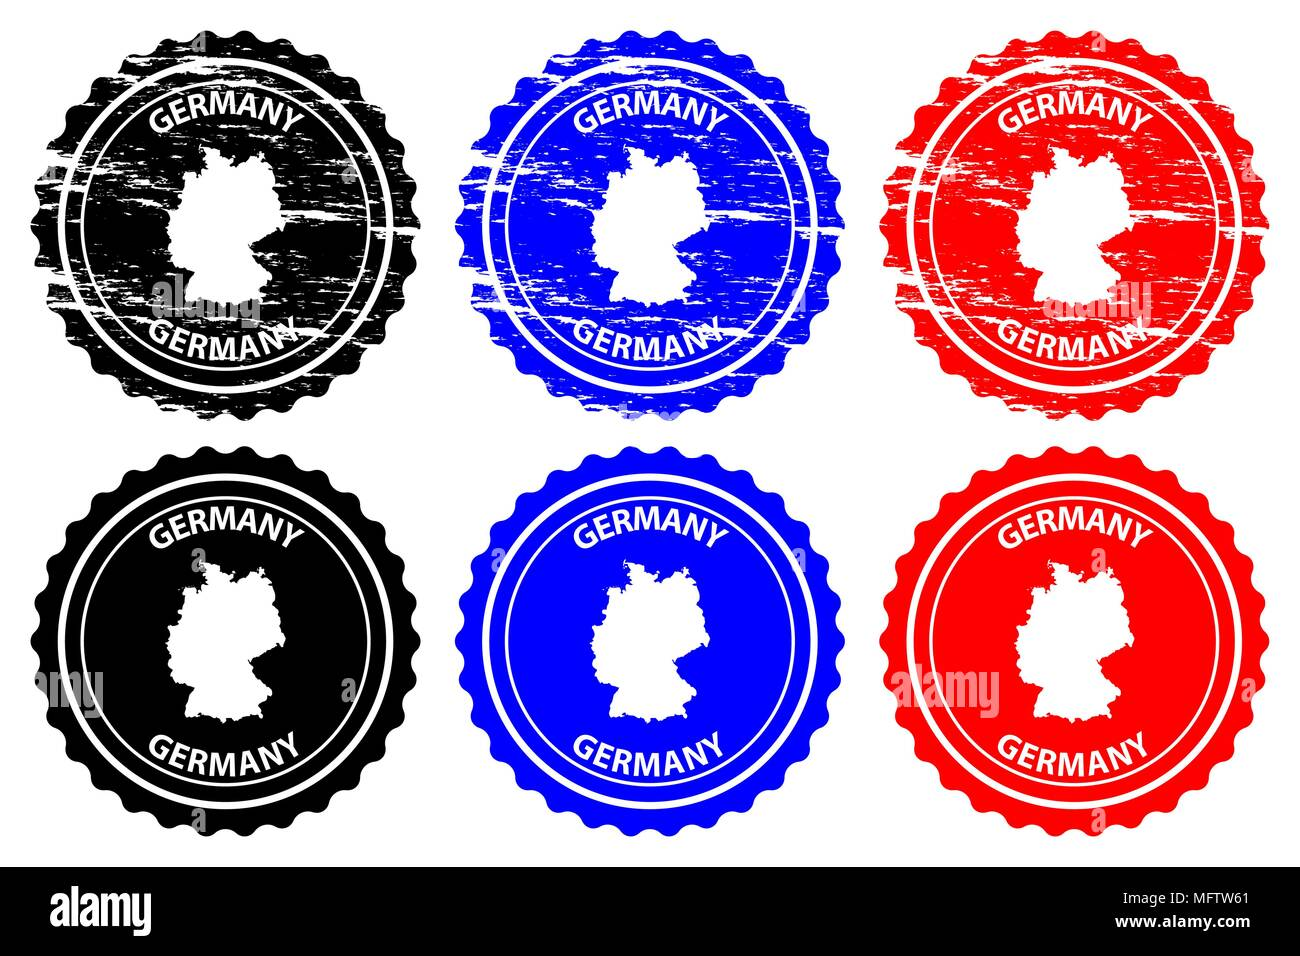 Germany - rubber stamp - vector, Deutschland map pattern - sticker - black, blue and red - Stock Vector